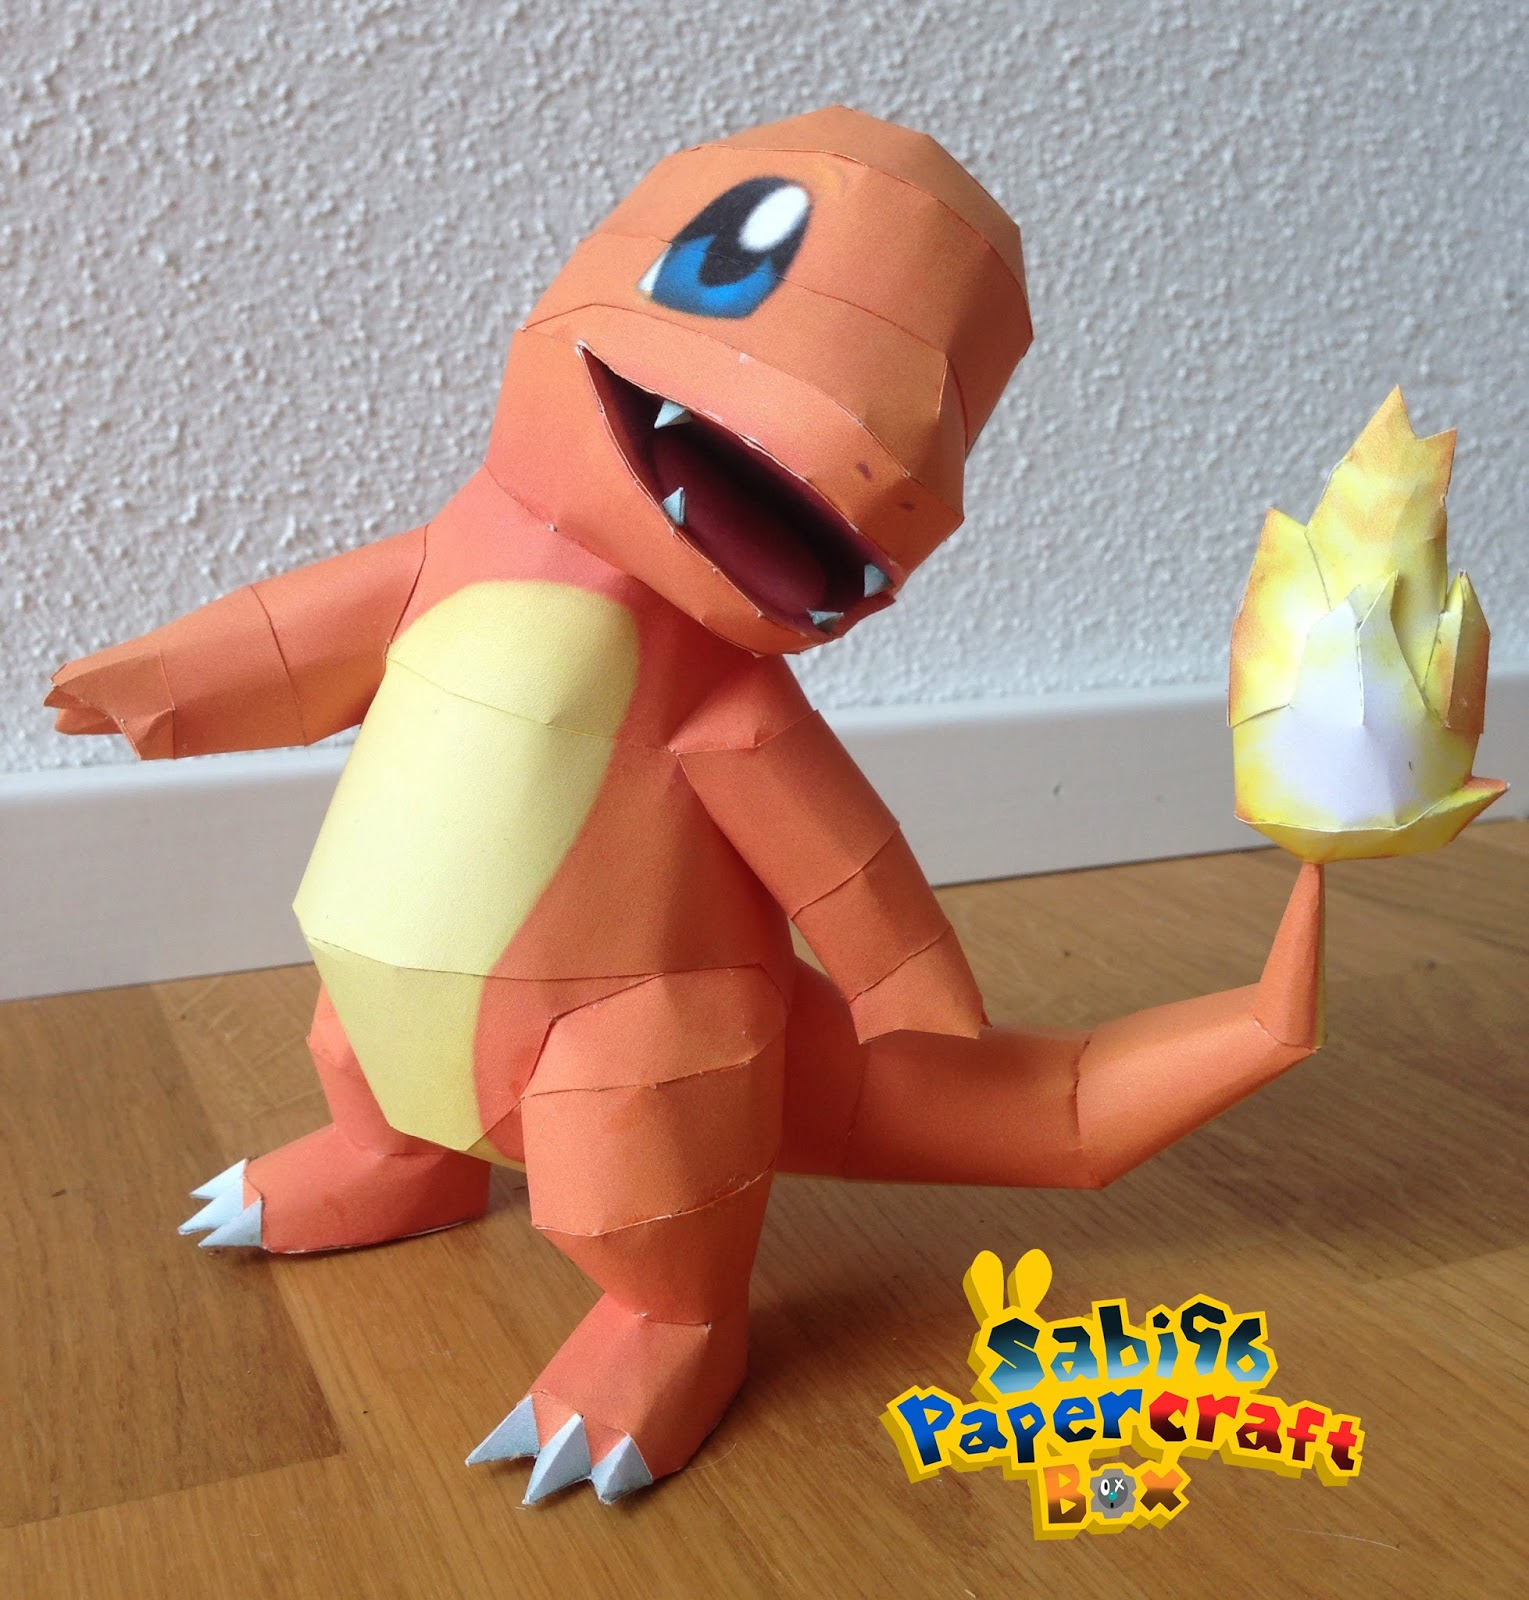 Charmander Is A Bipedal Reptilian Pokemon With Primarily Orange Body Its Underside From The Chest Down And Soles Are Cream Colored